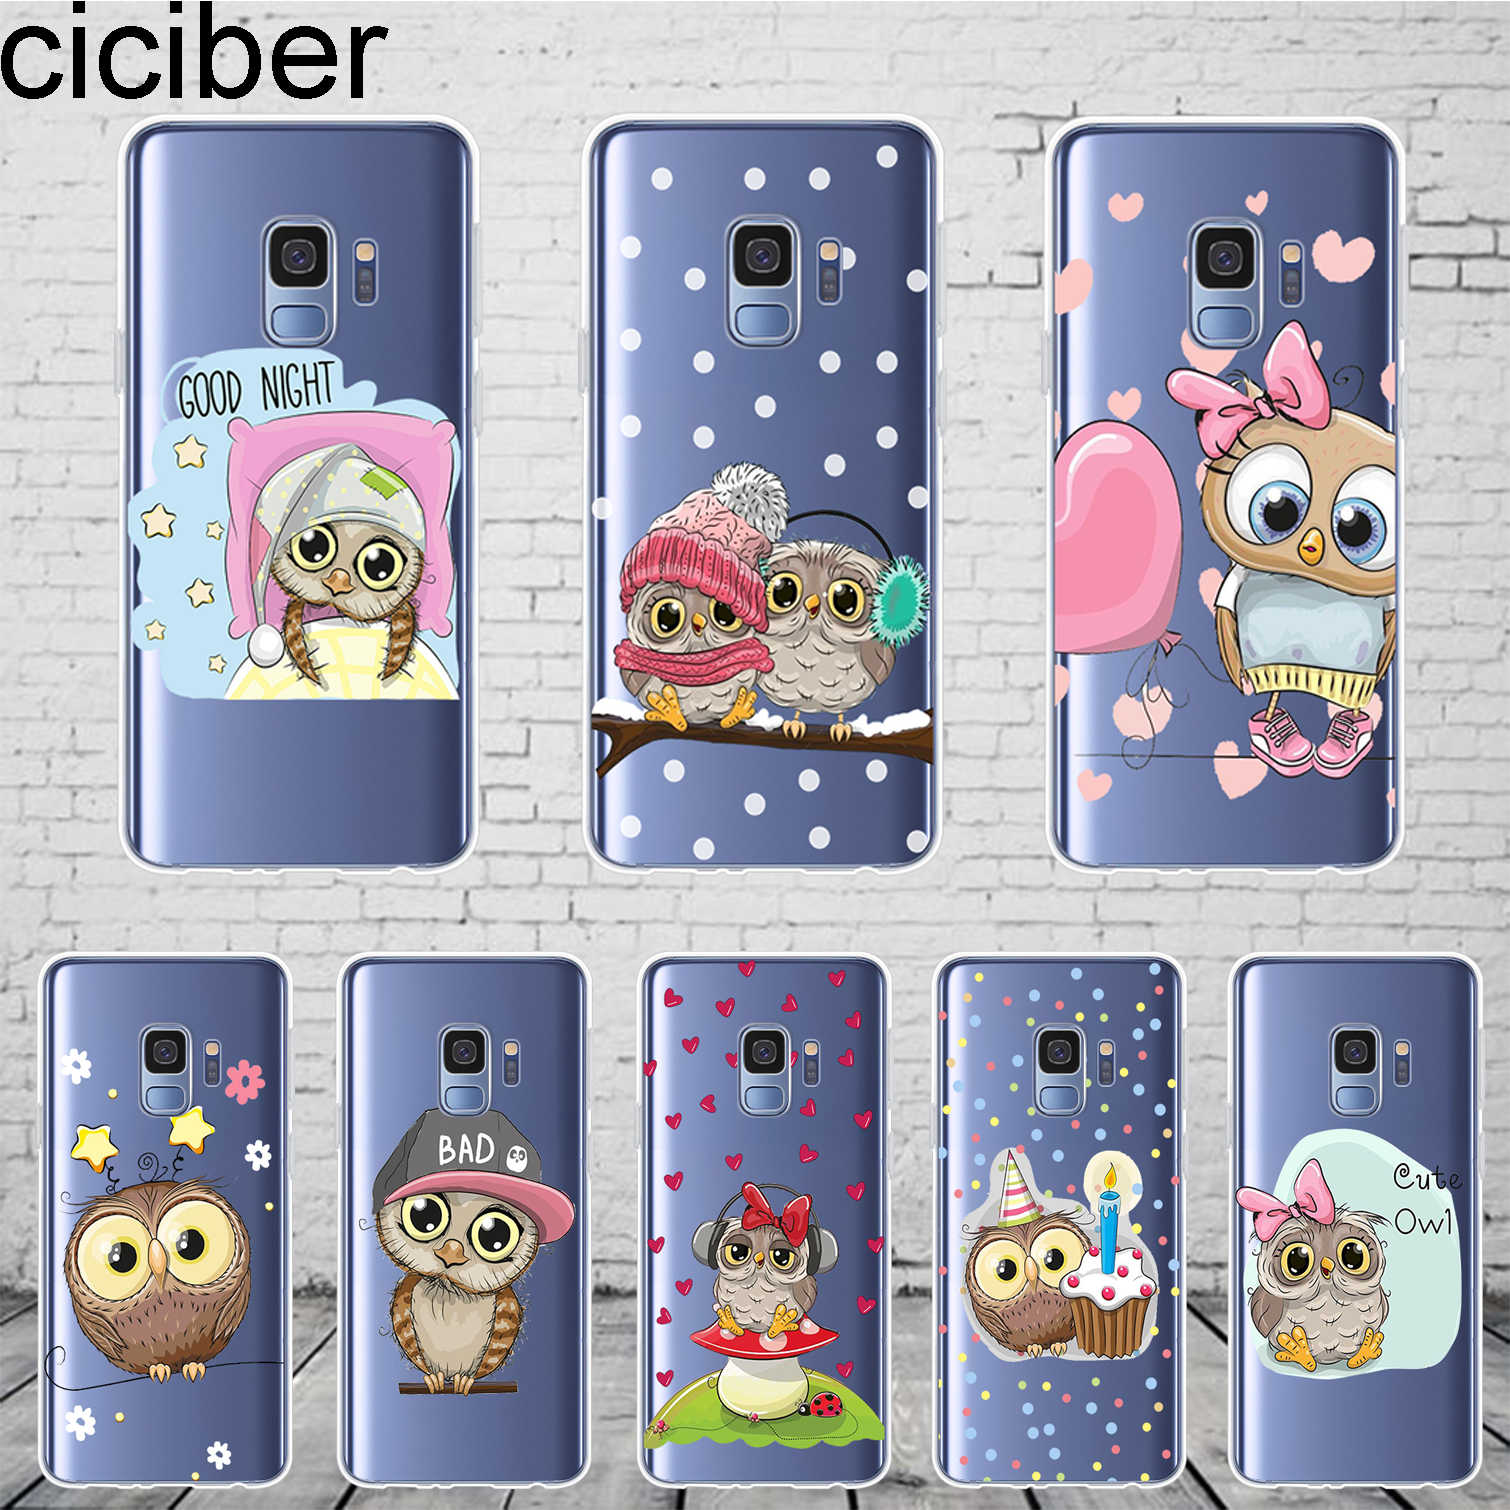 ciciber Cute Animal Owl Coque For Samsung Galaxy S 6 7 8 9 Edge Plus Phone Case For Galaxy Note 3 4 5 8 9 10 Plus Cover Soft TPU